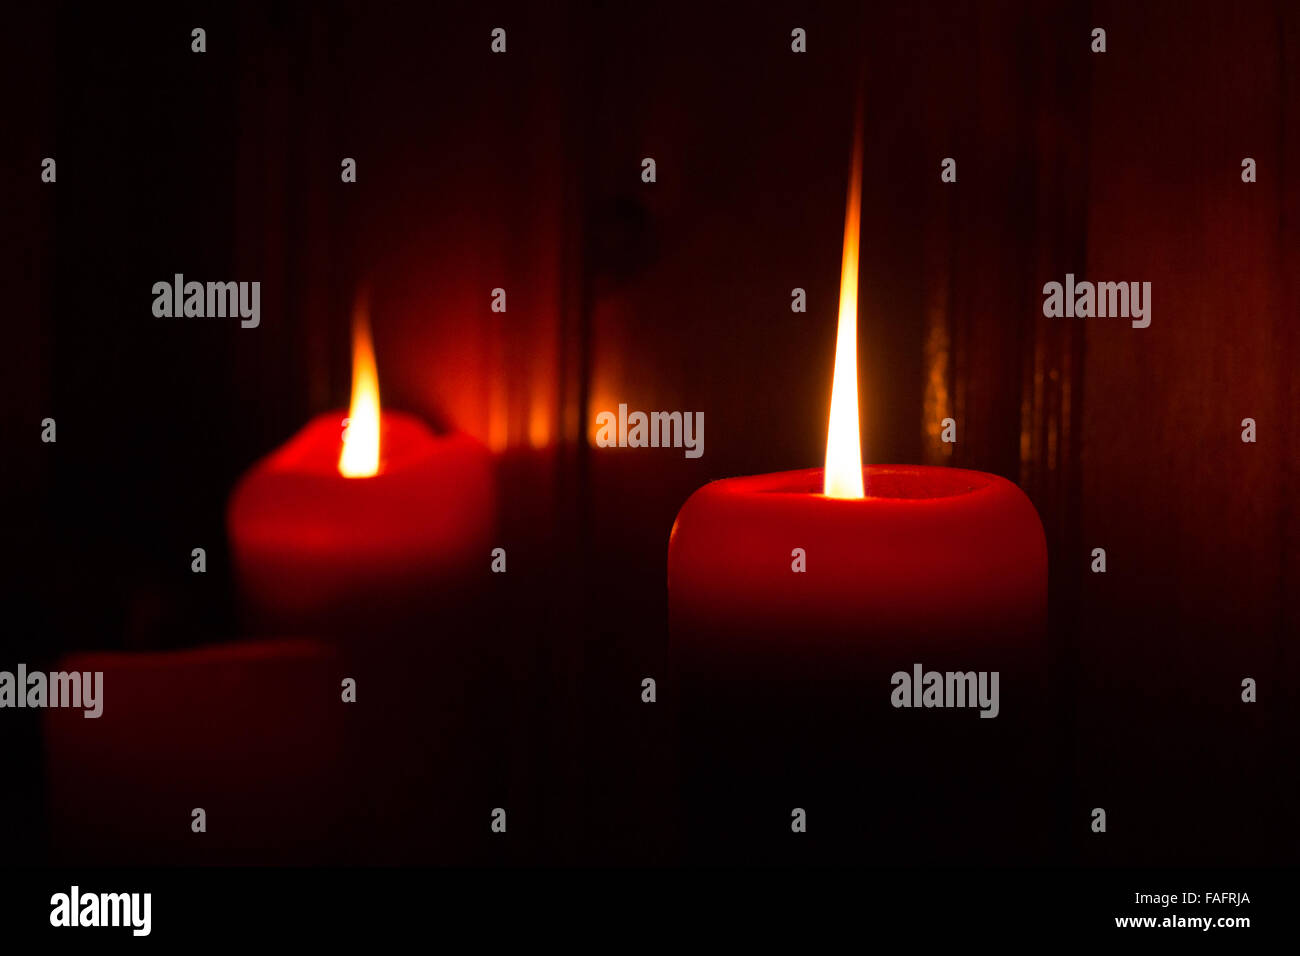 3 red burning candles lighting the darkness. - Stock Image